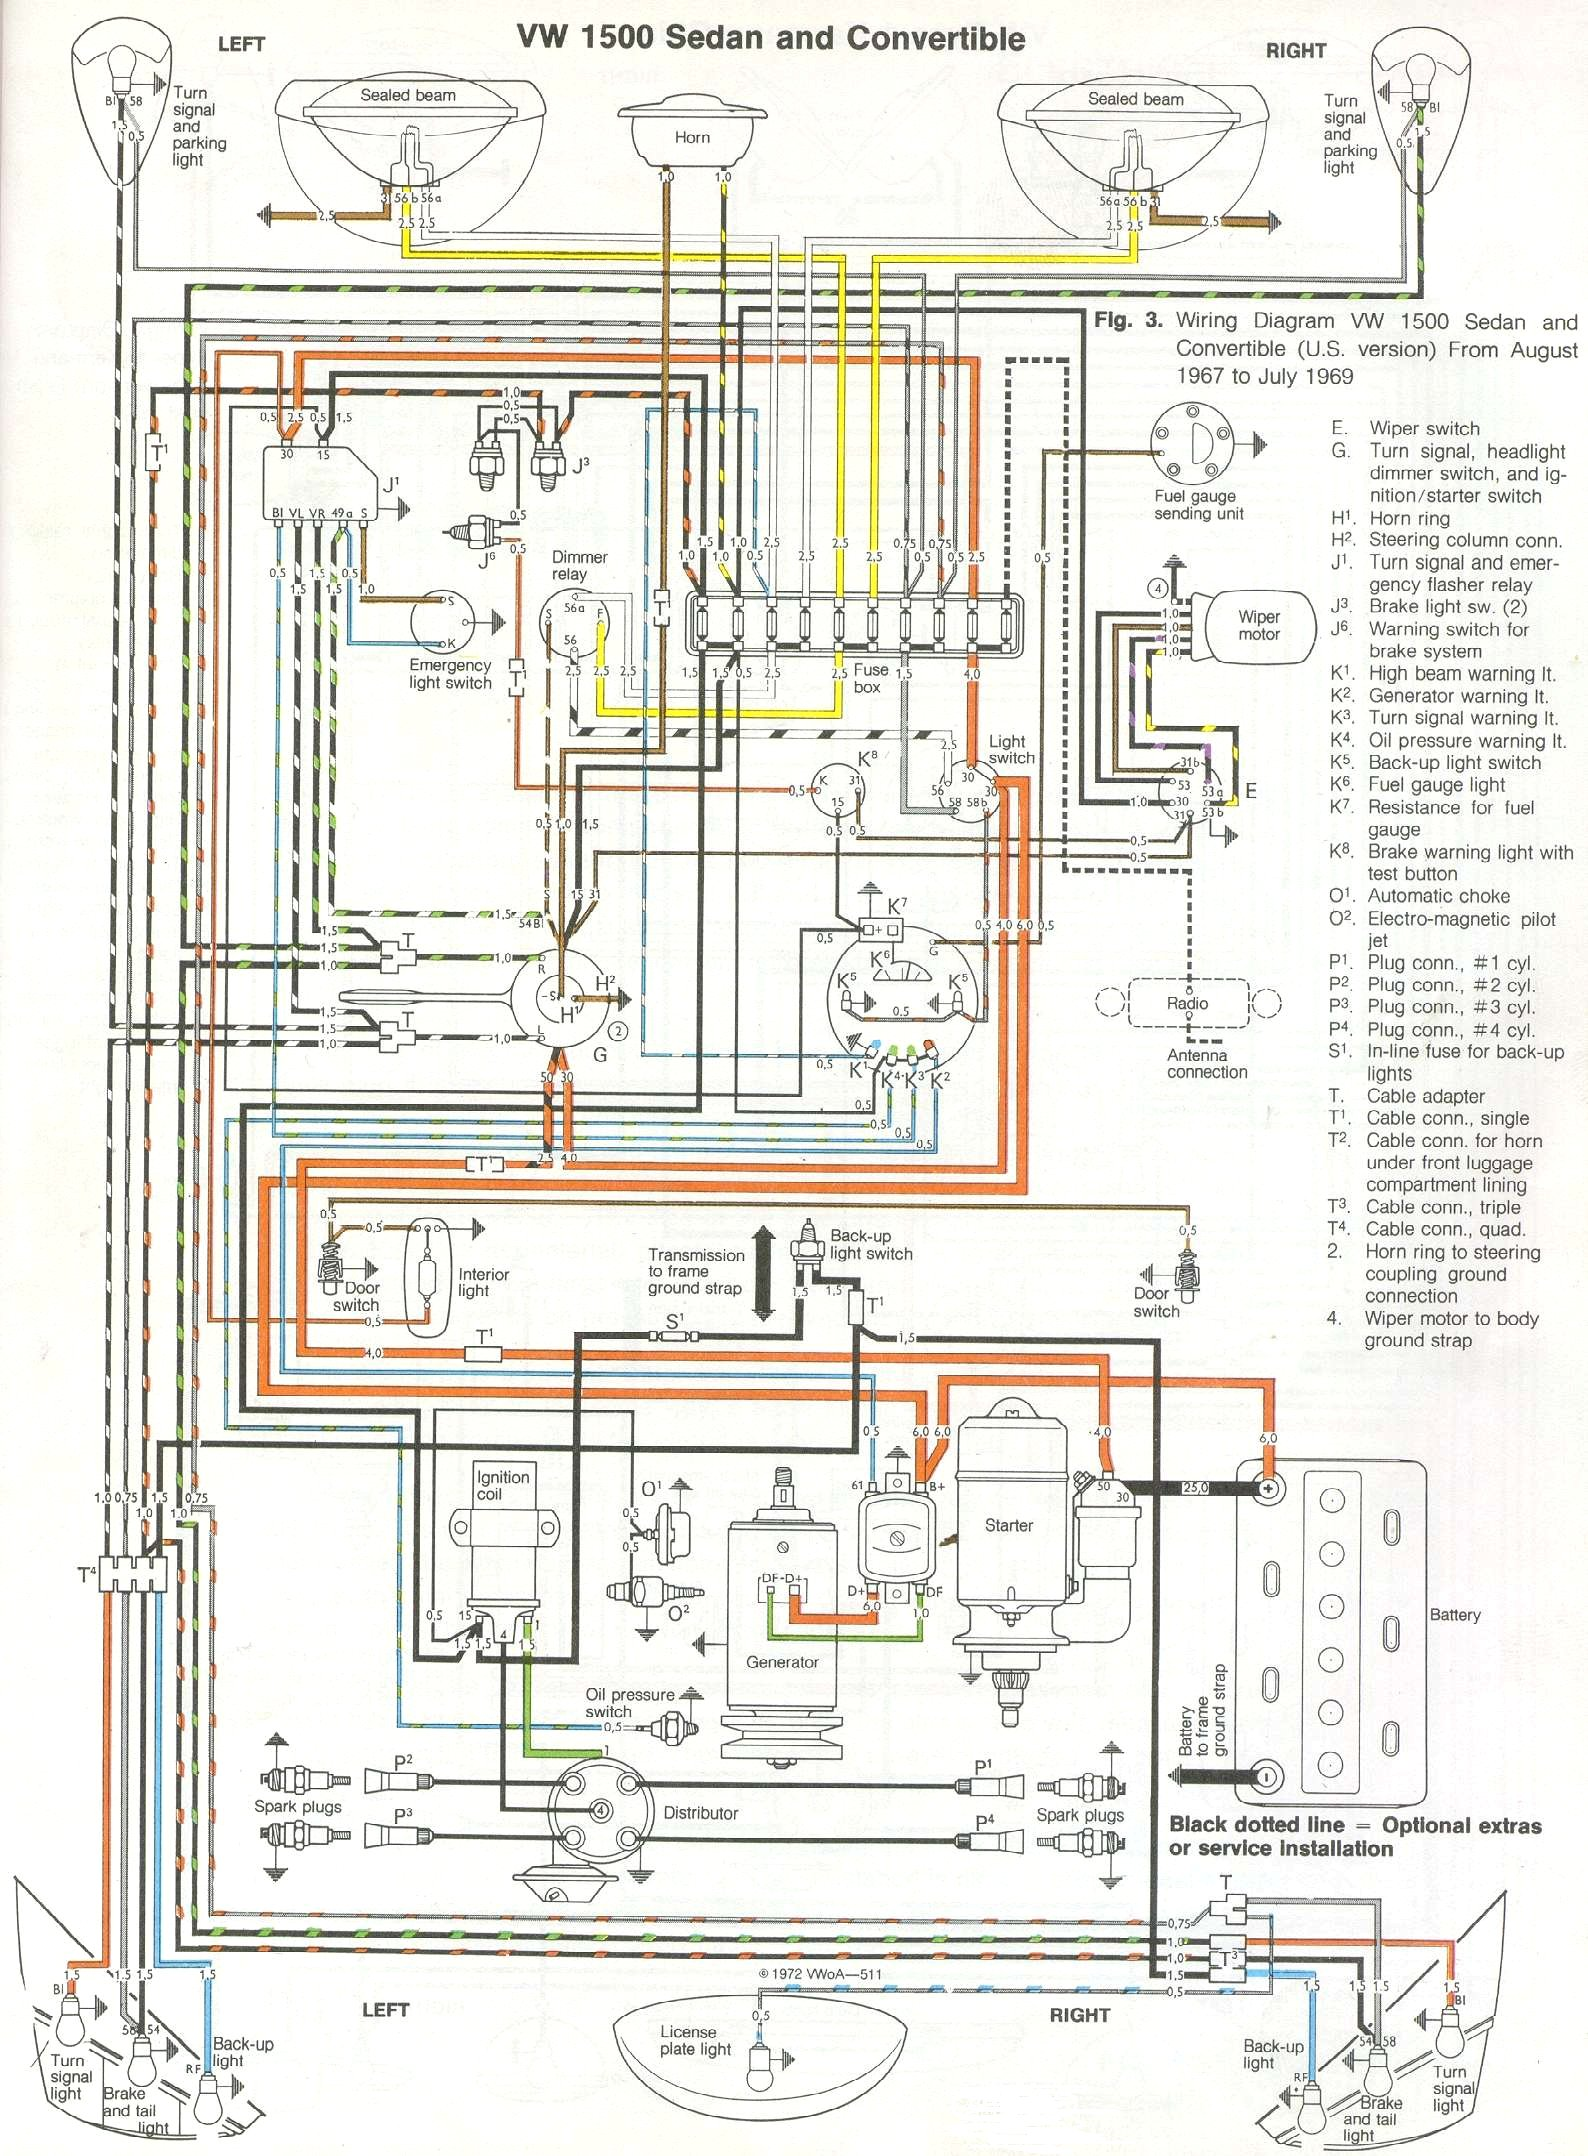 2006 Dodge Charger Wiring Harness Diagram Great Design Of 2010 Sxt Fuse 1969 71 Beetle Thegoldenbug Com 2008 Box 06